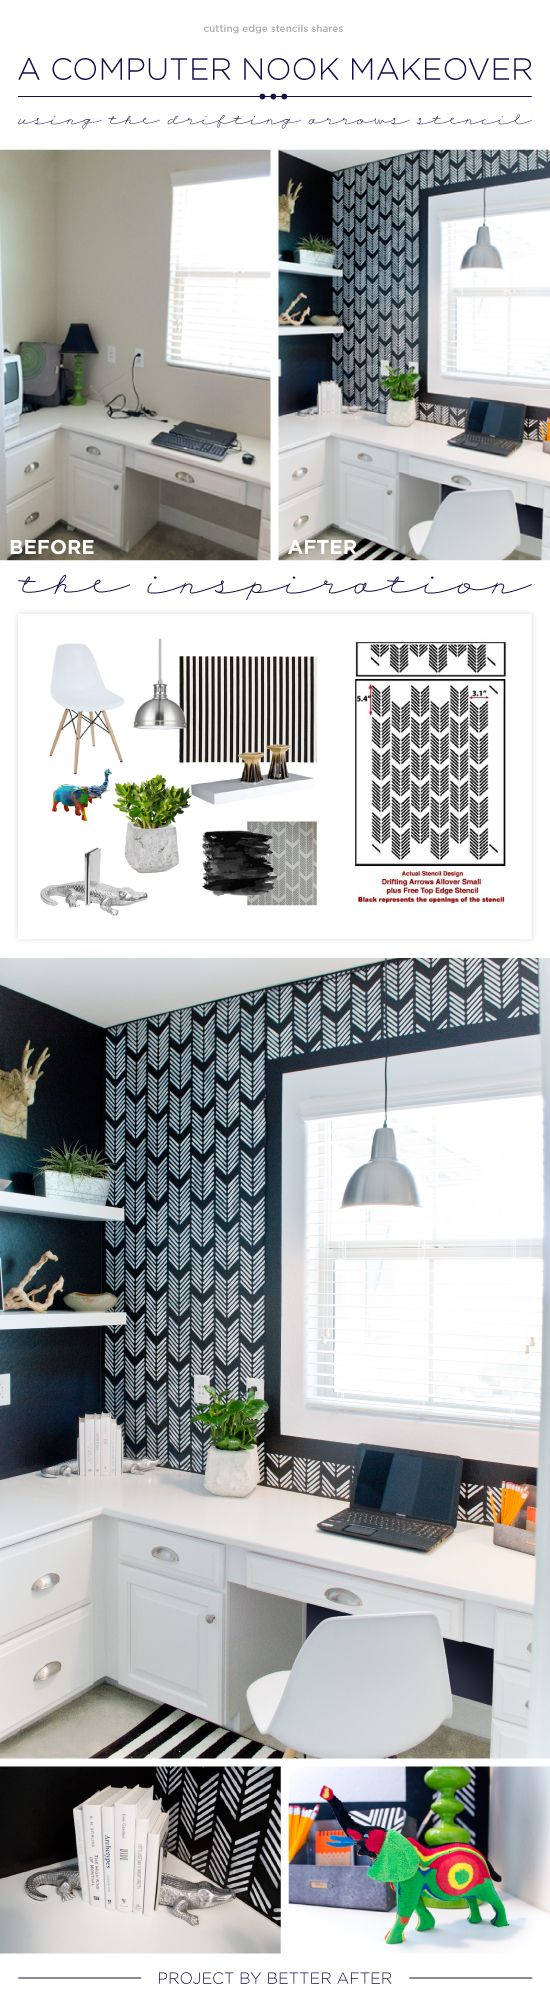 Best 25 diy stenciled walls ideas on pinterest stencil wall art cutting edge stencils shares a diy stenciled accent wall in a computer nook using the drifting amipublicfo Choice Image